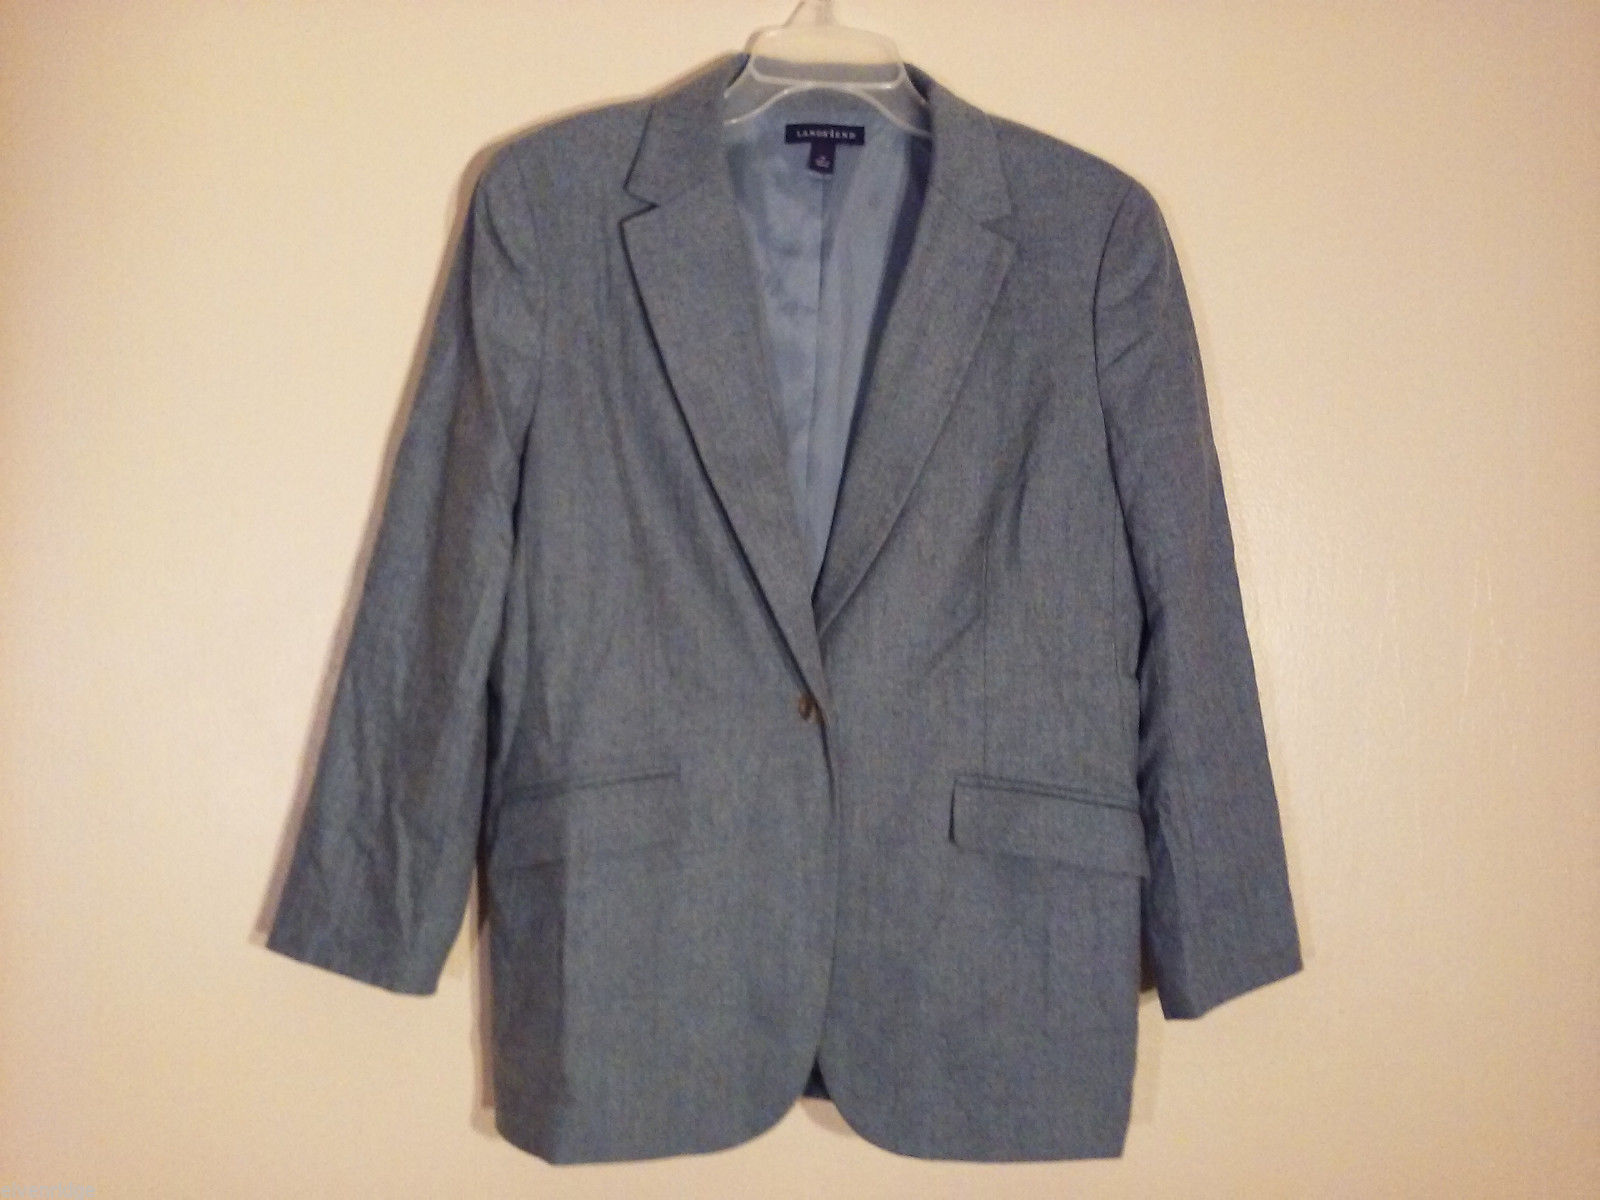 Lands' End Women's Size 10P 10 Petite Blazer Herringbone Tweed Gray Wool Blend